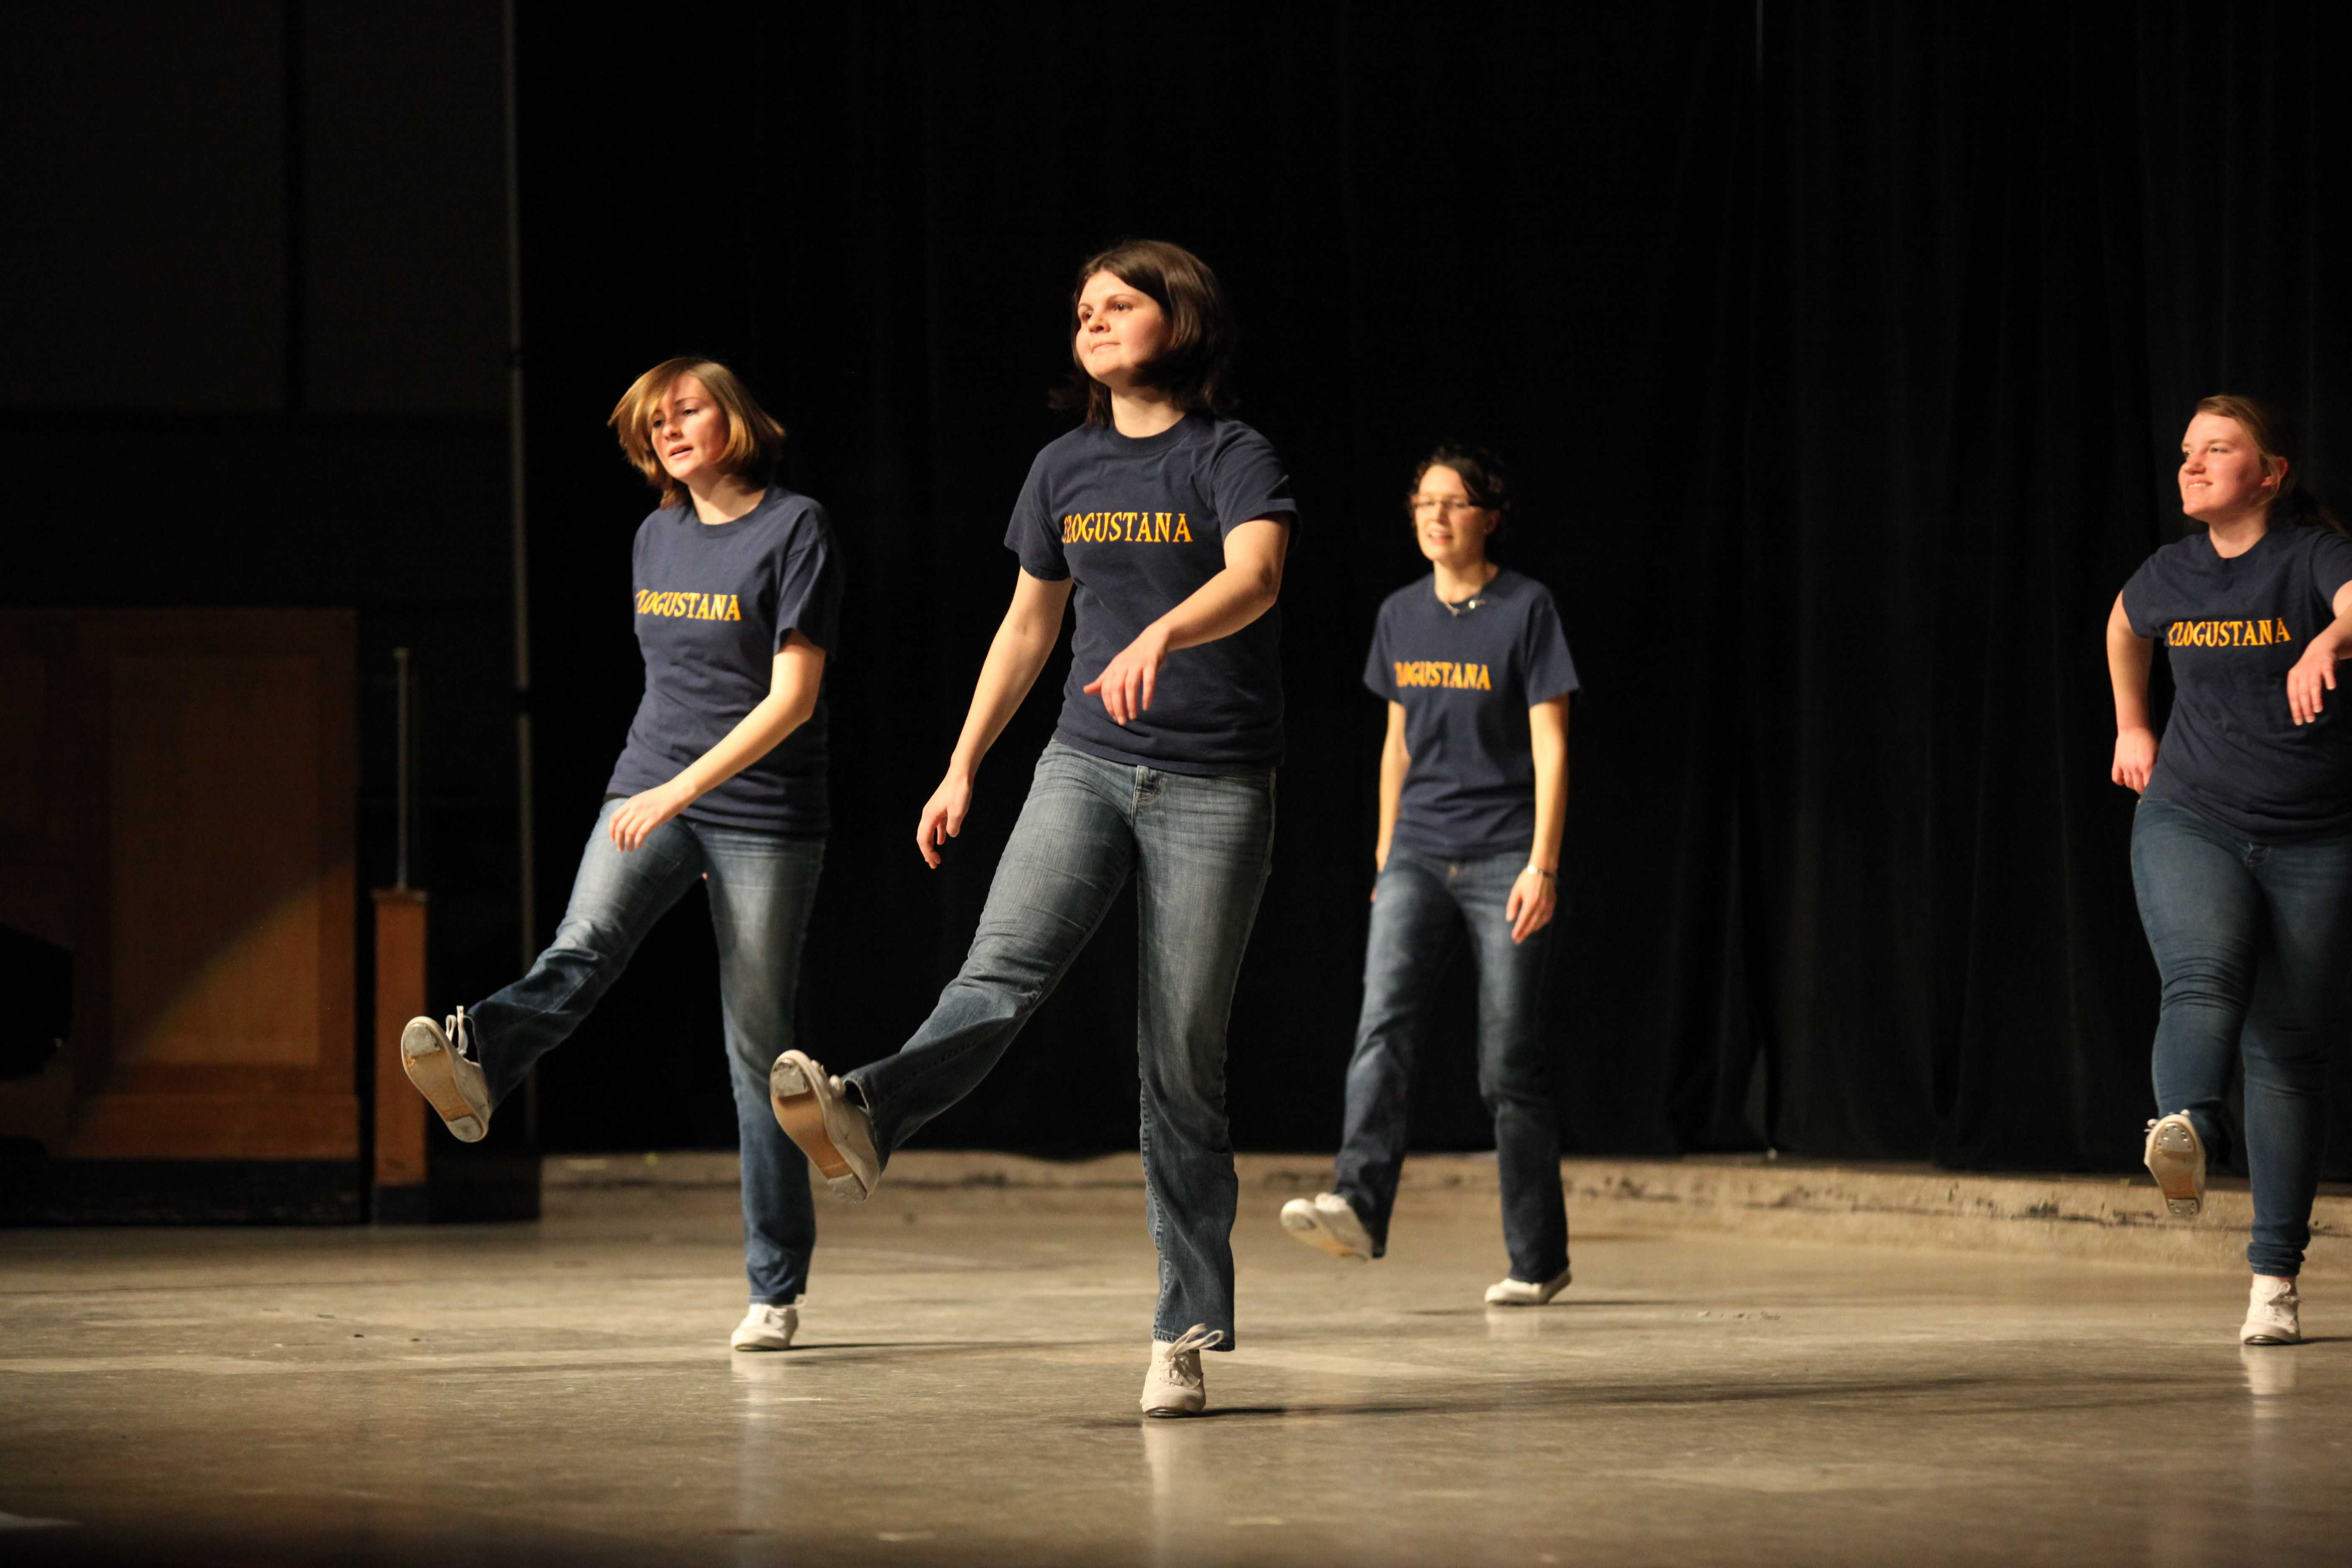 Clogustana performs their showcase on Jan. 23 in Centennial Hall.